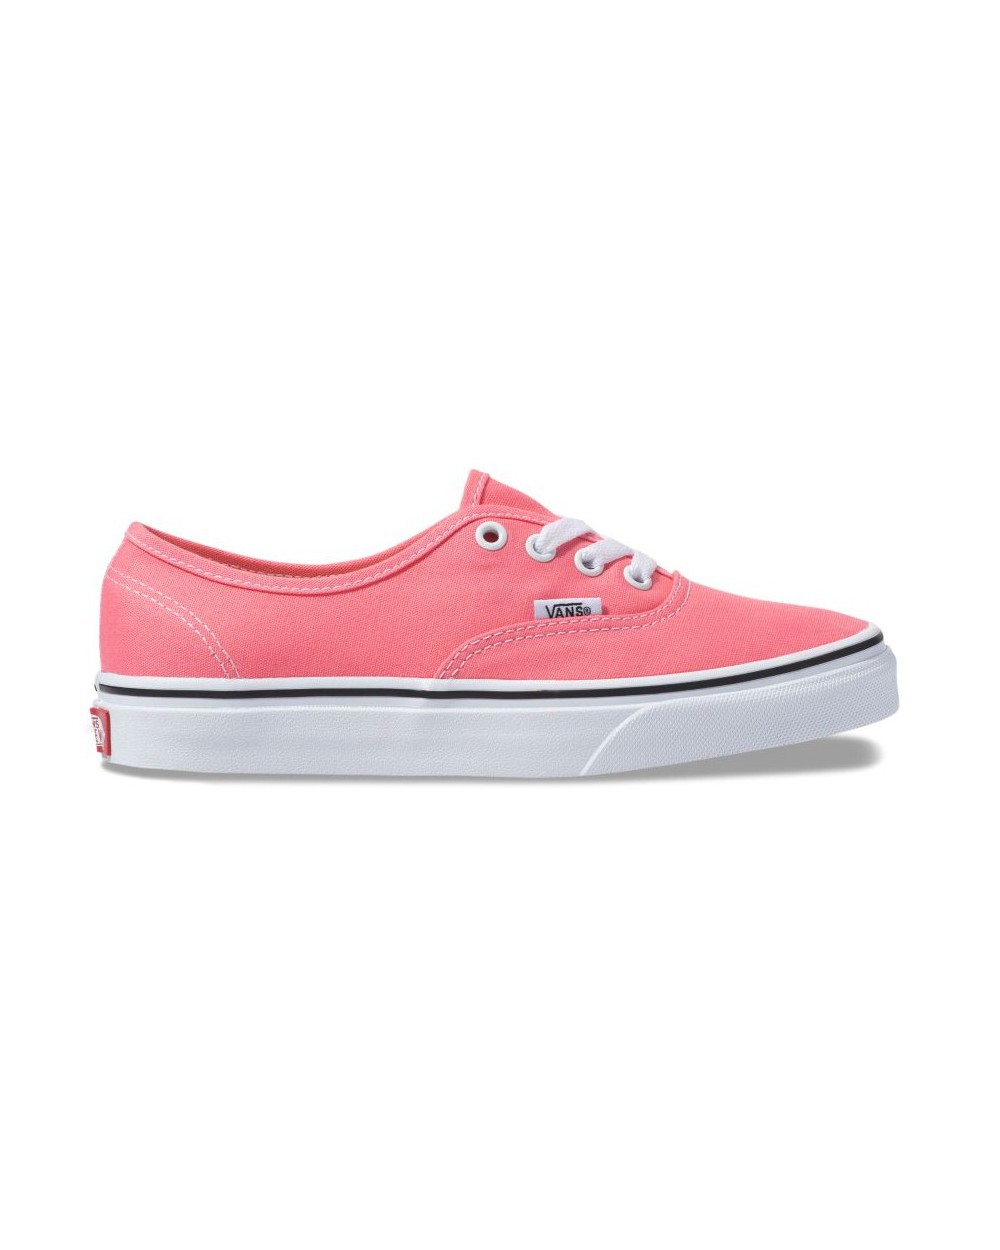 Vans Authentic Shoes - Strawberry Pink / True White